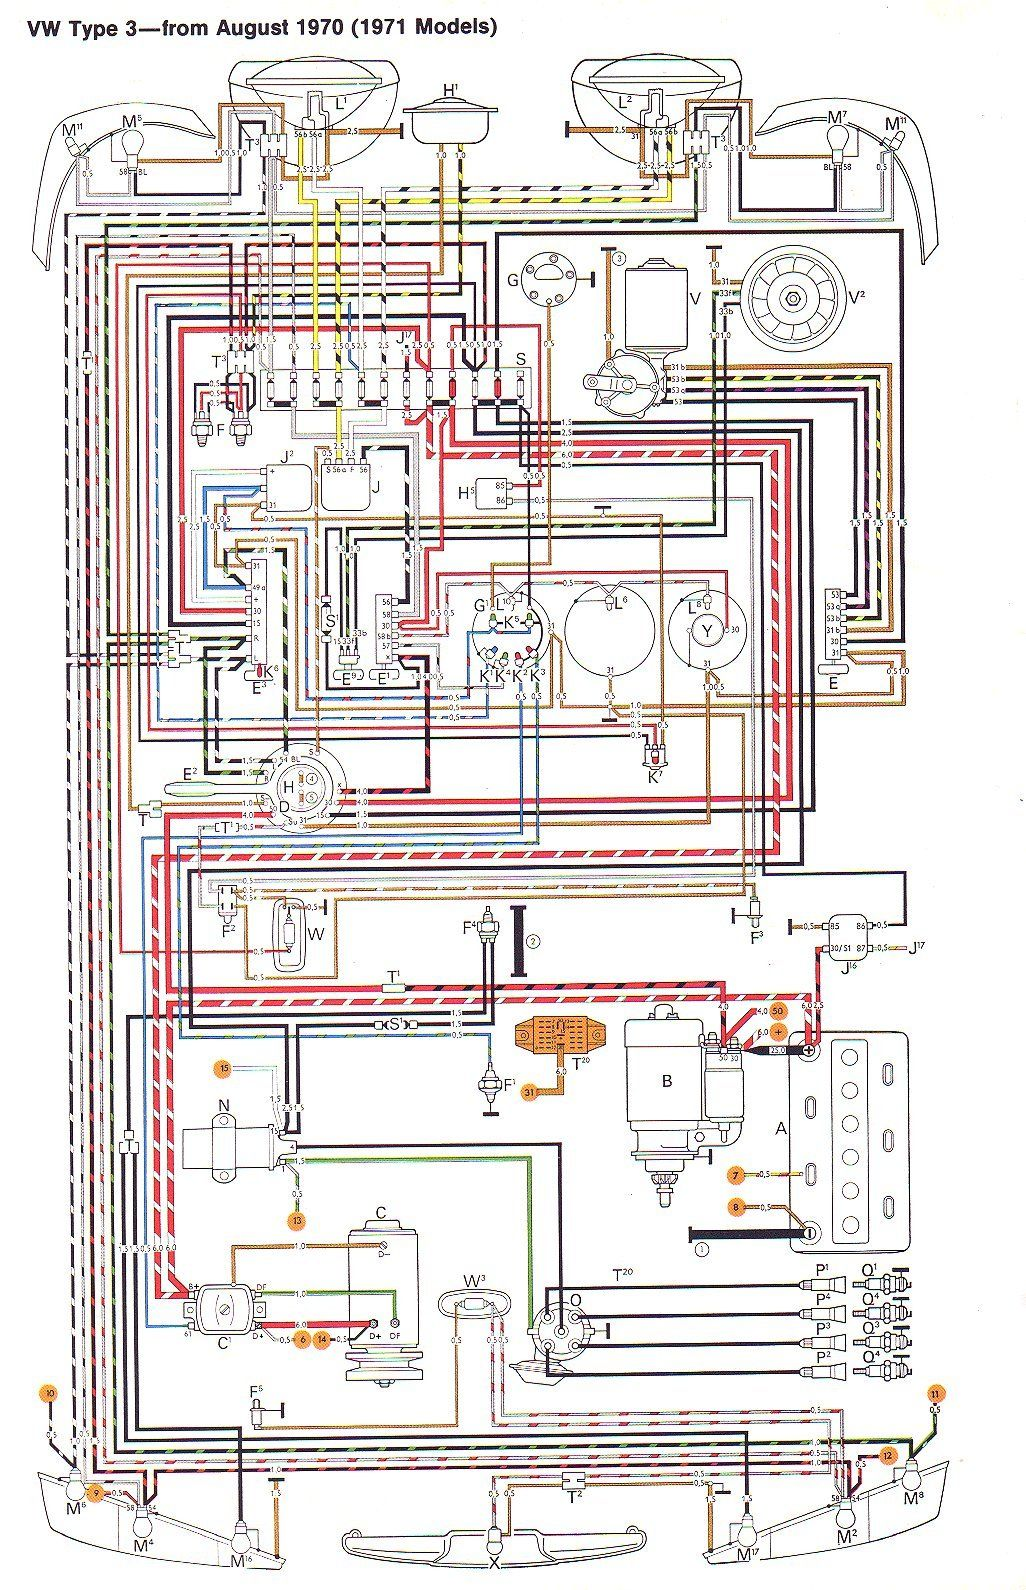 e0db58370f79a63d02d45f00cf63f44a 71 vw t3 wiring diagram car projects pinterest volkswagen vw t5 wiring diagram at crackthecode.co